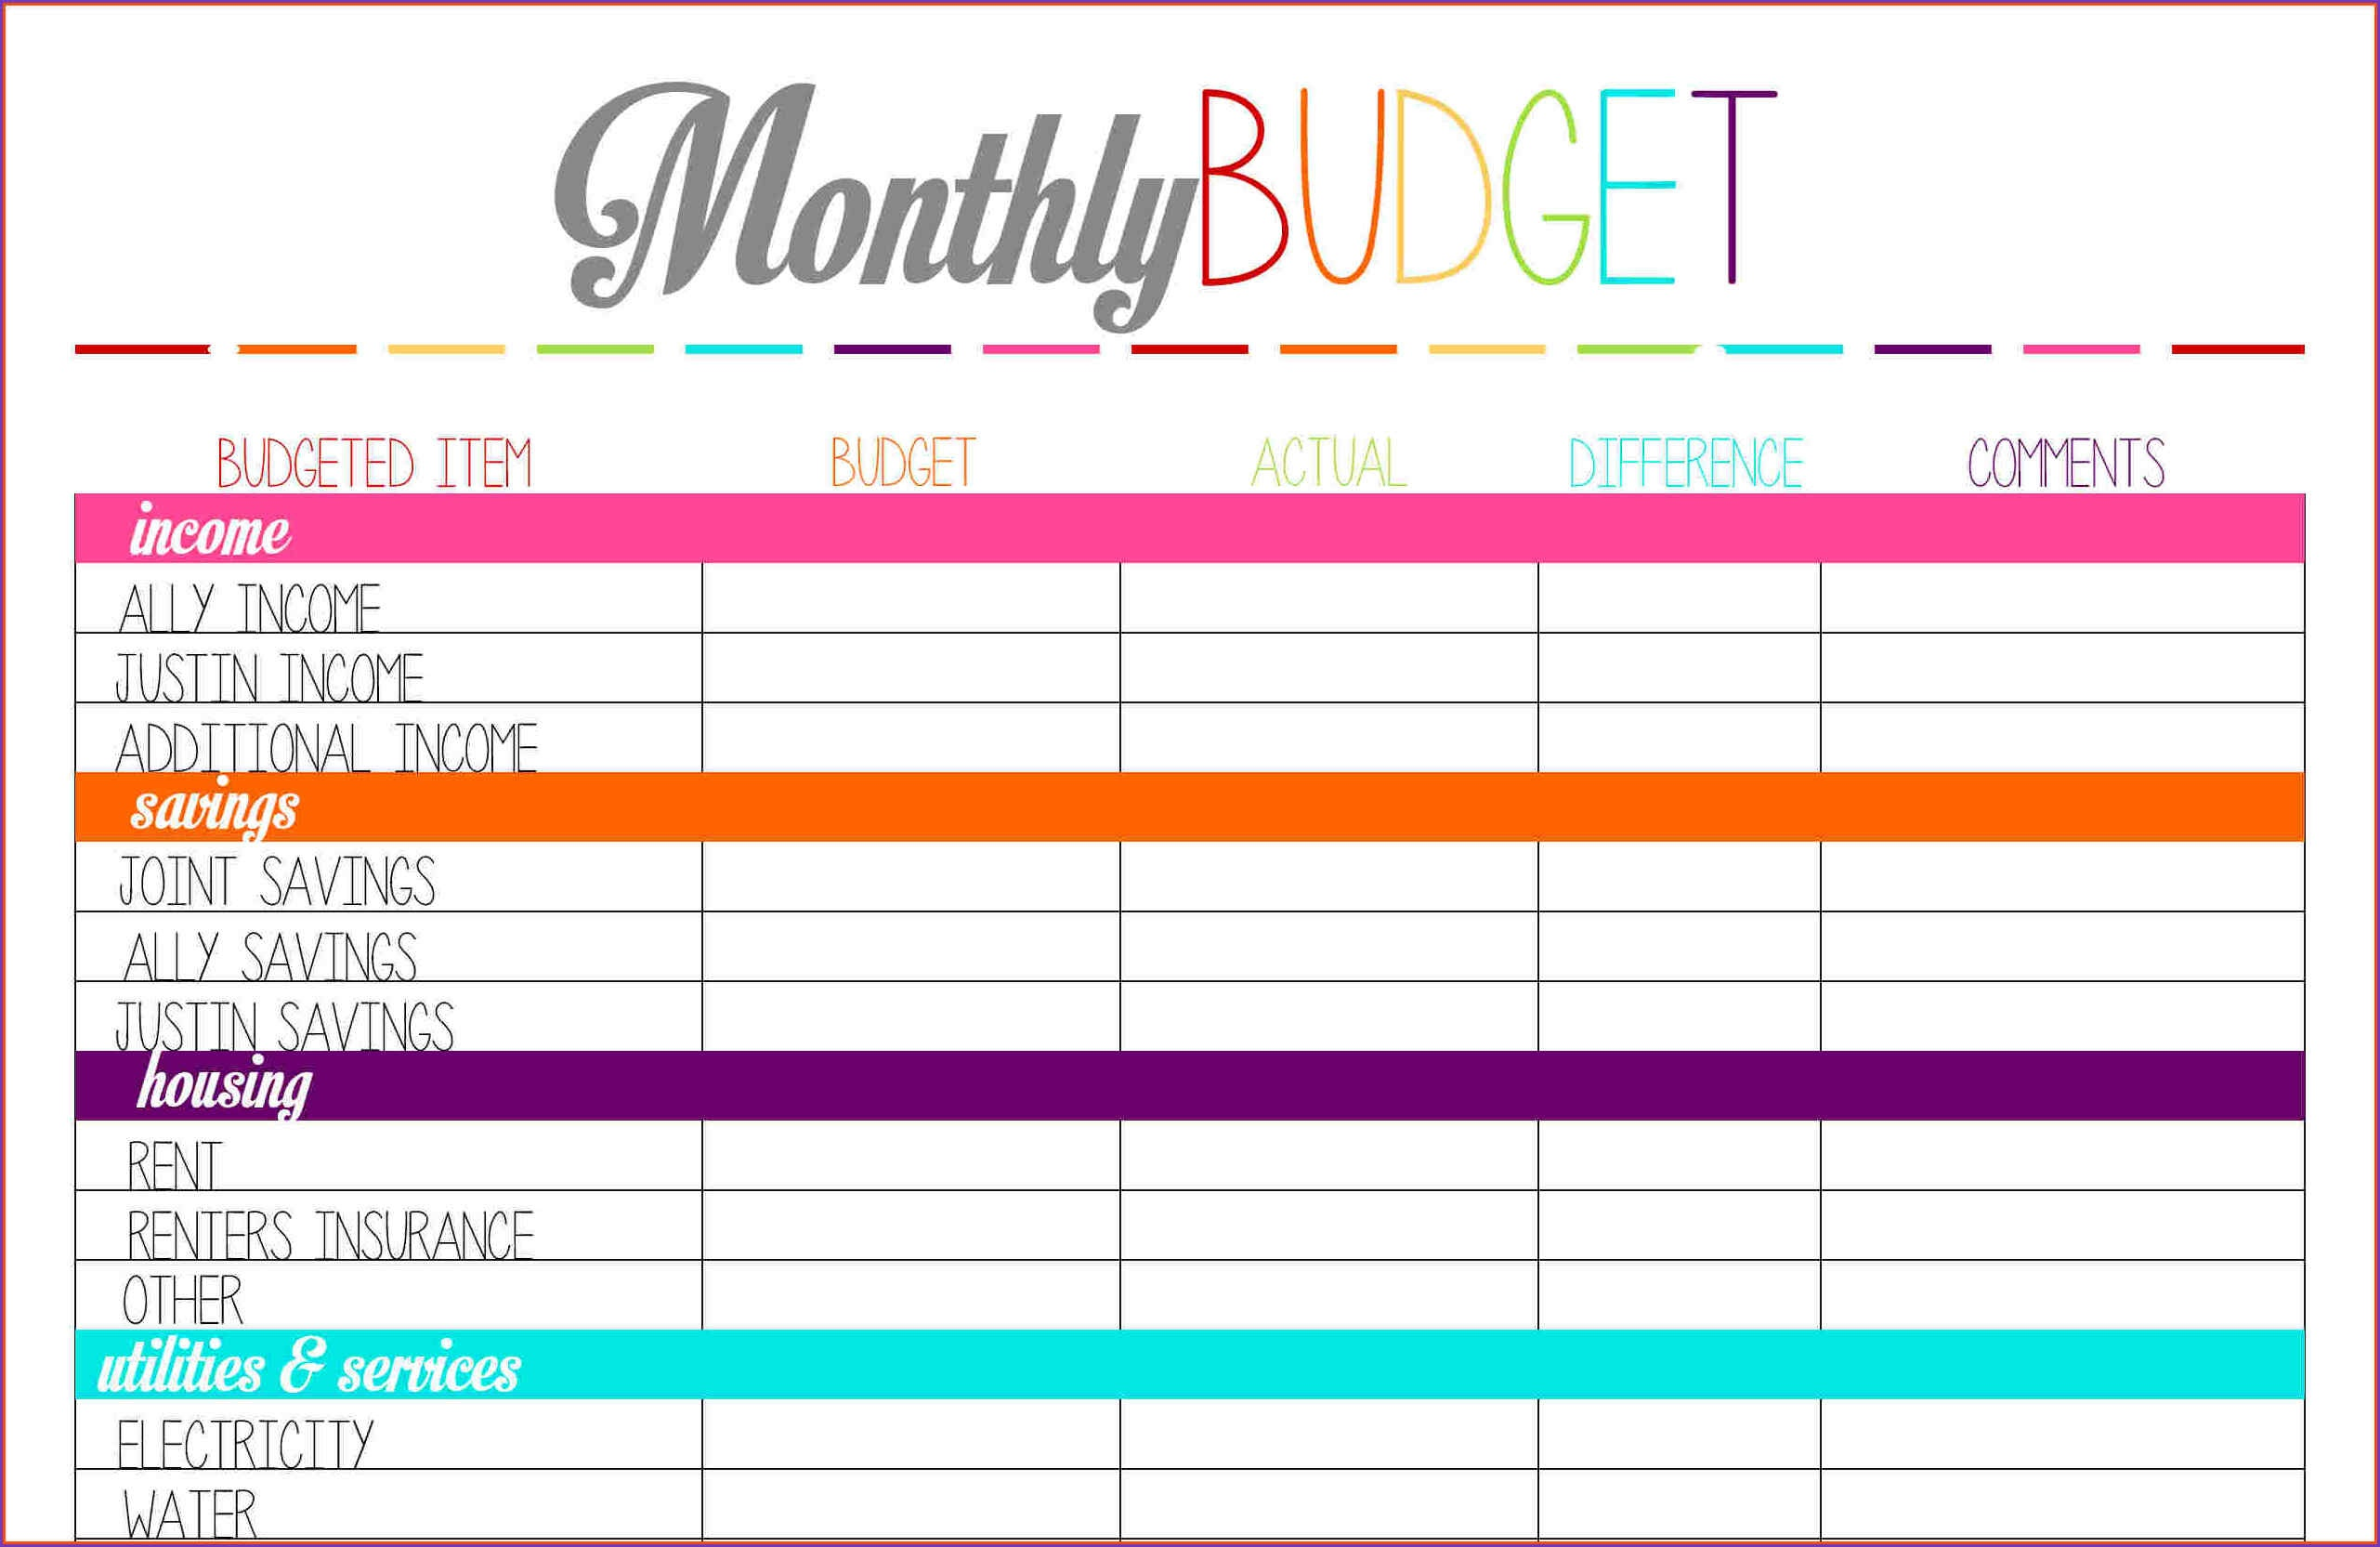 Family Et Forms Free Reunion Spreadsheet Online Planner Printable - Free Online Printable Budget Worksheet